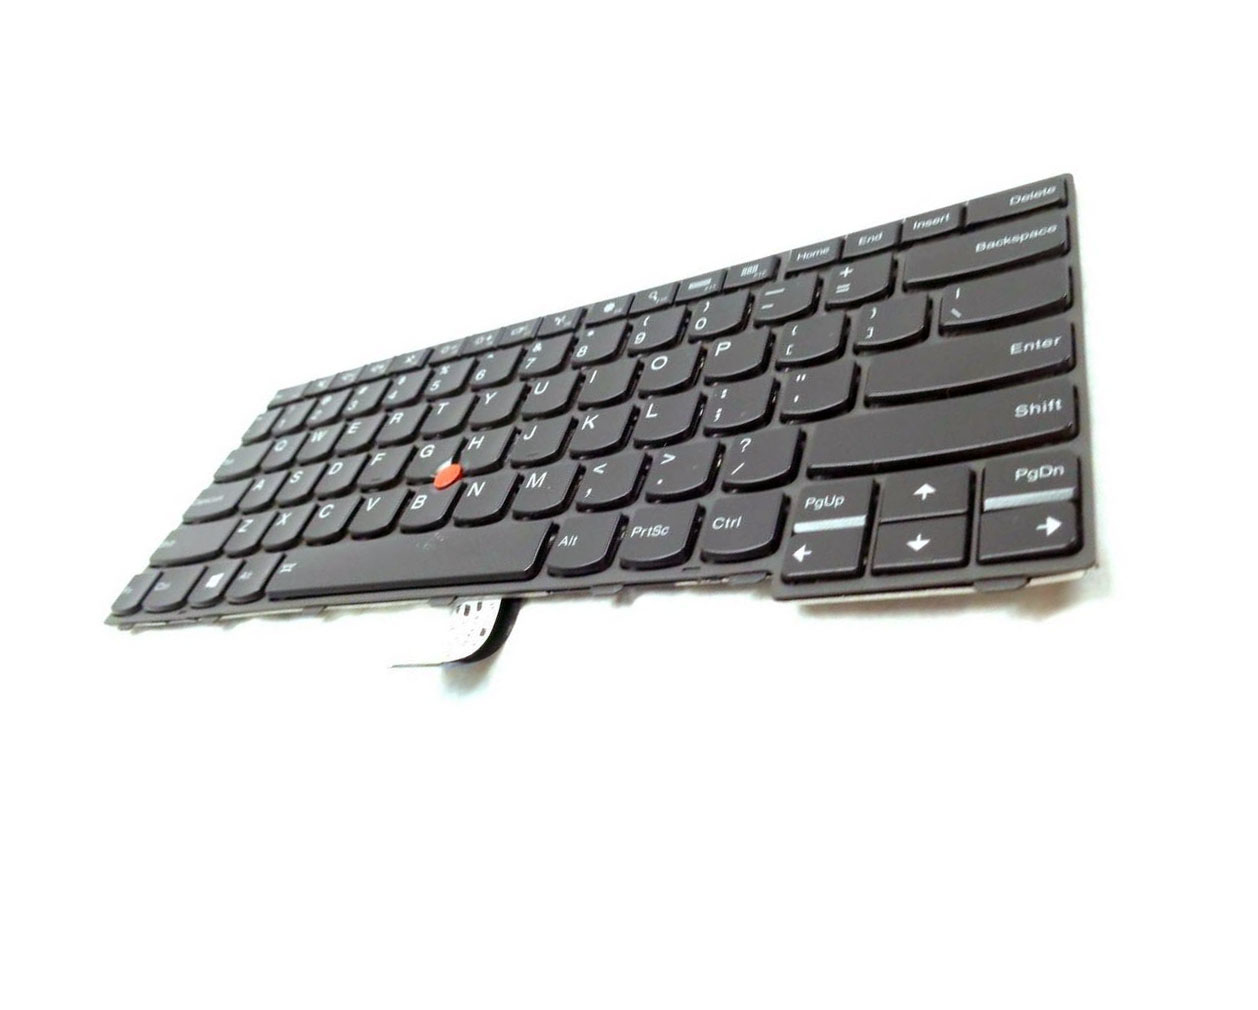 LENOVO 04X0150 KEYBOARD NOTEBOOK SPARE PART